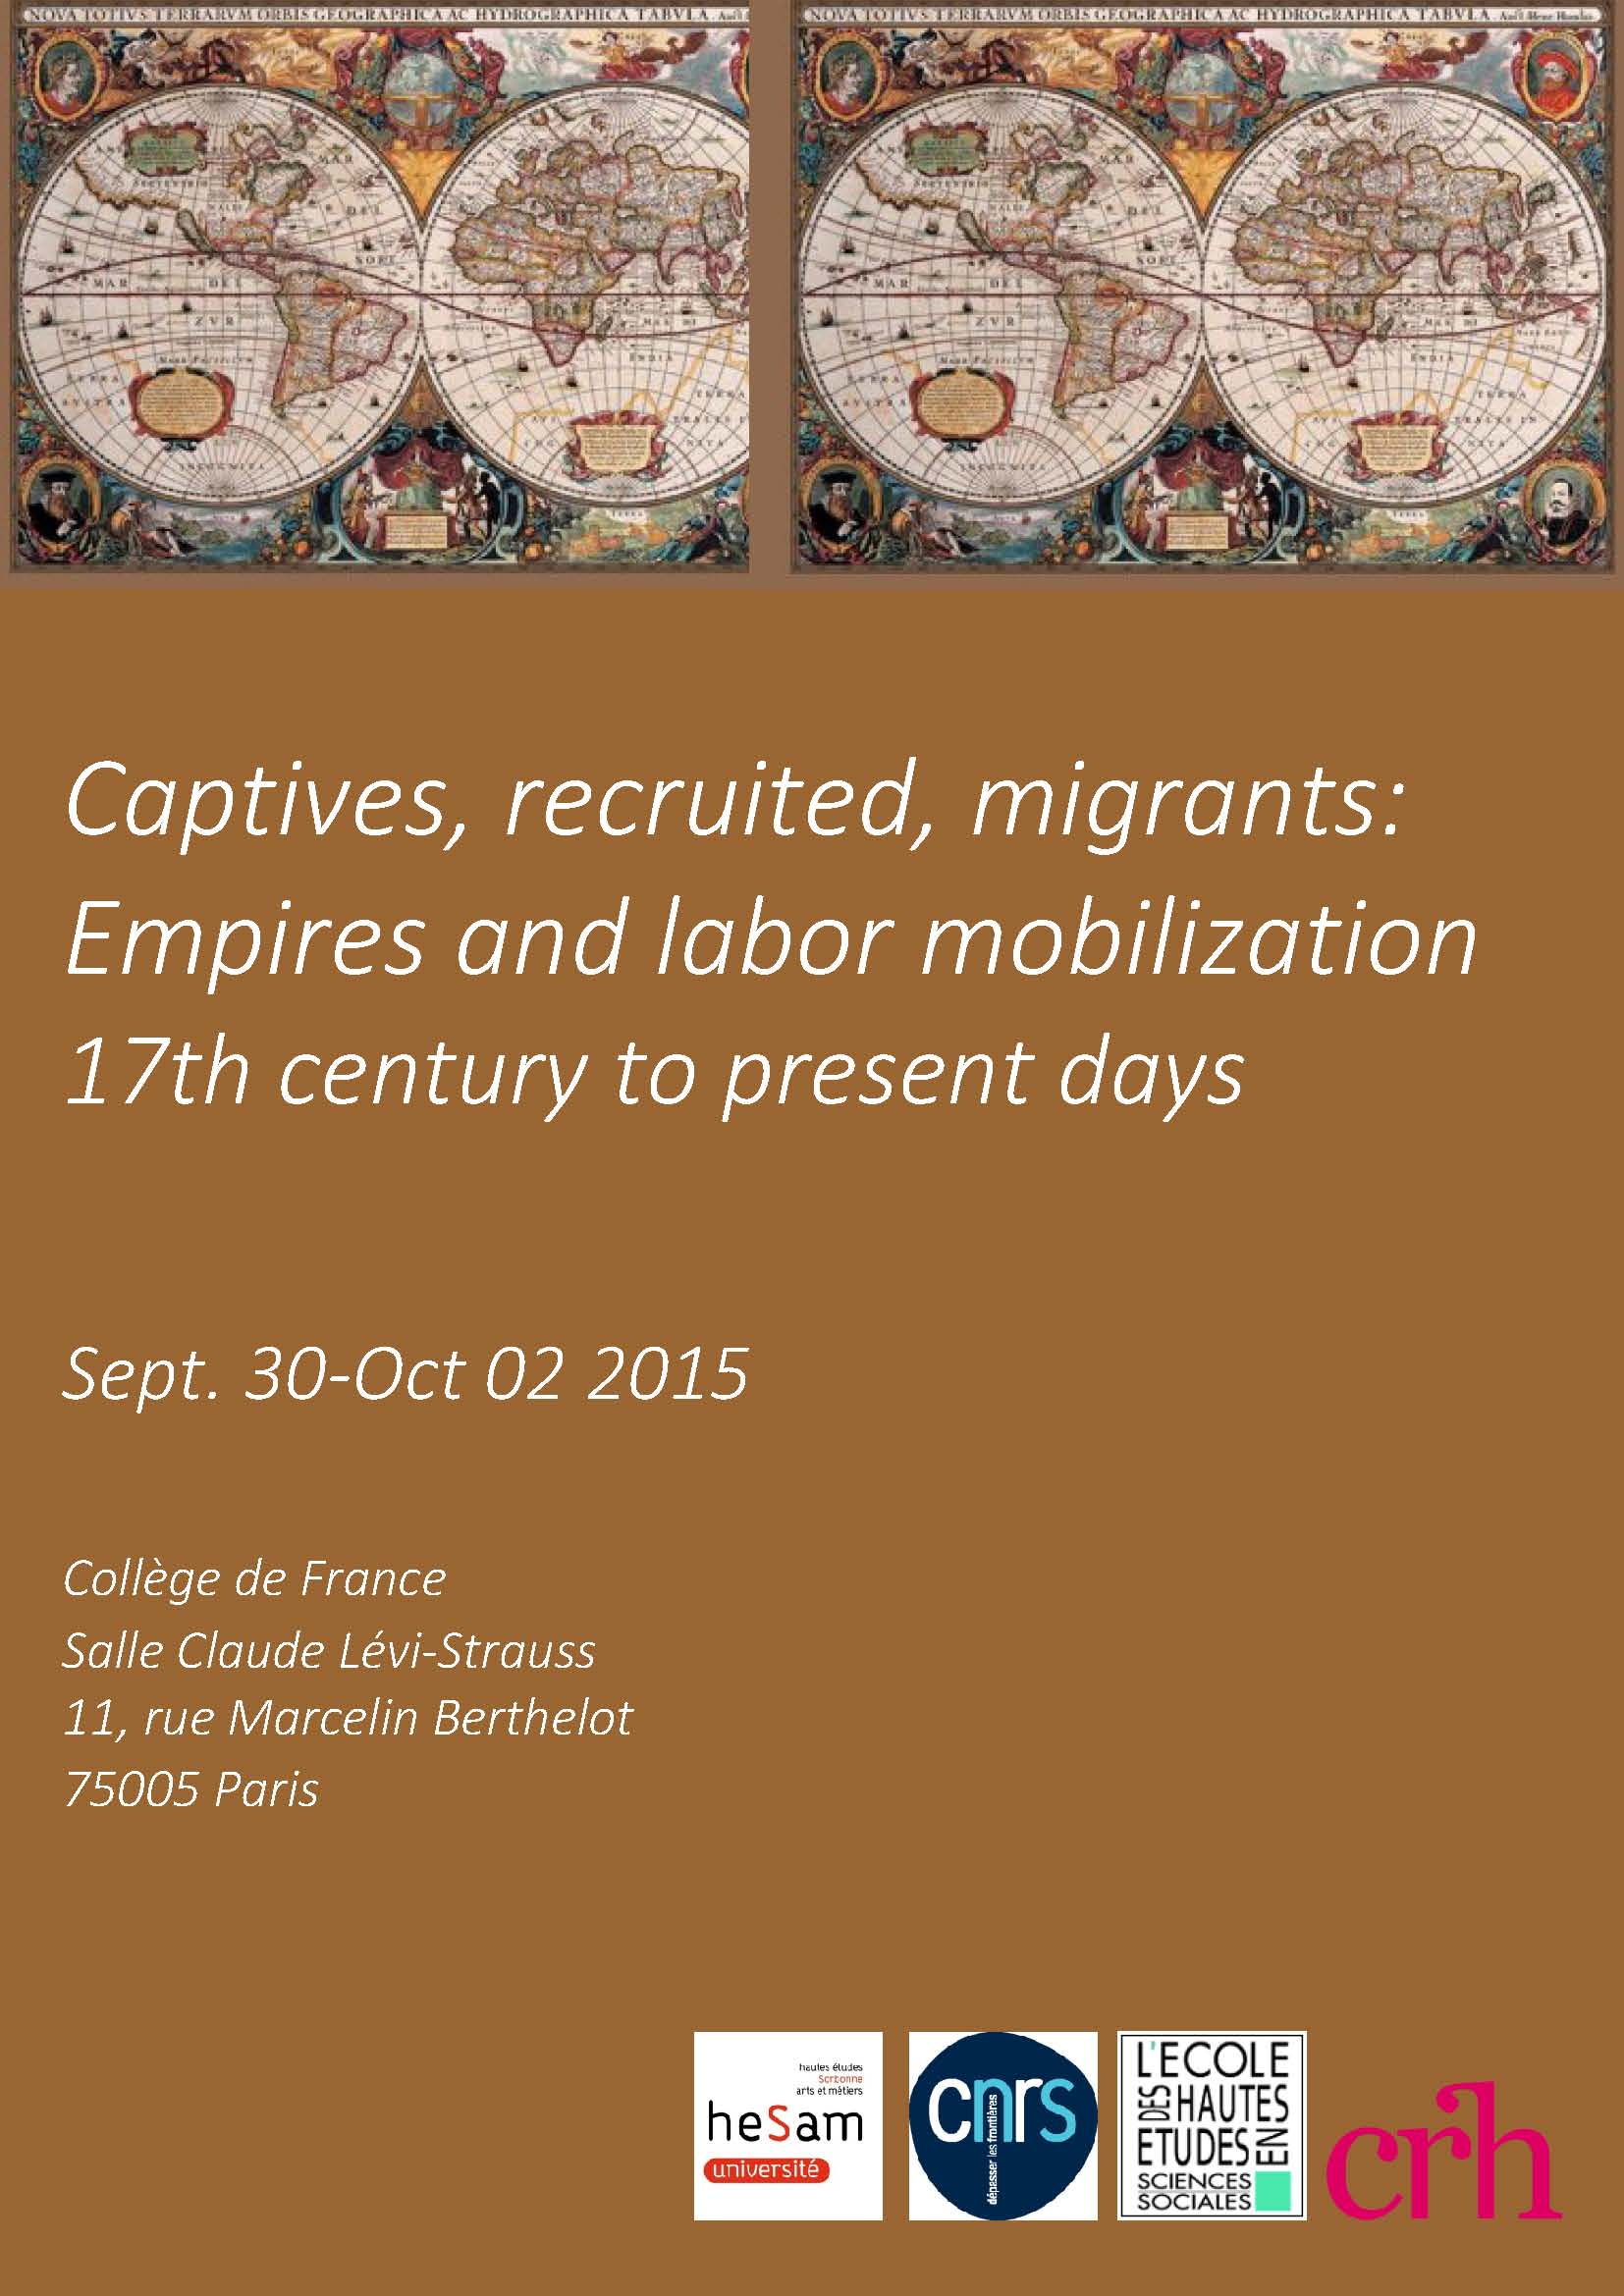 Captives, recruited, migrants: Empires and labor mobilization (17th century to present days)